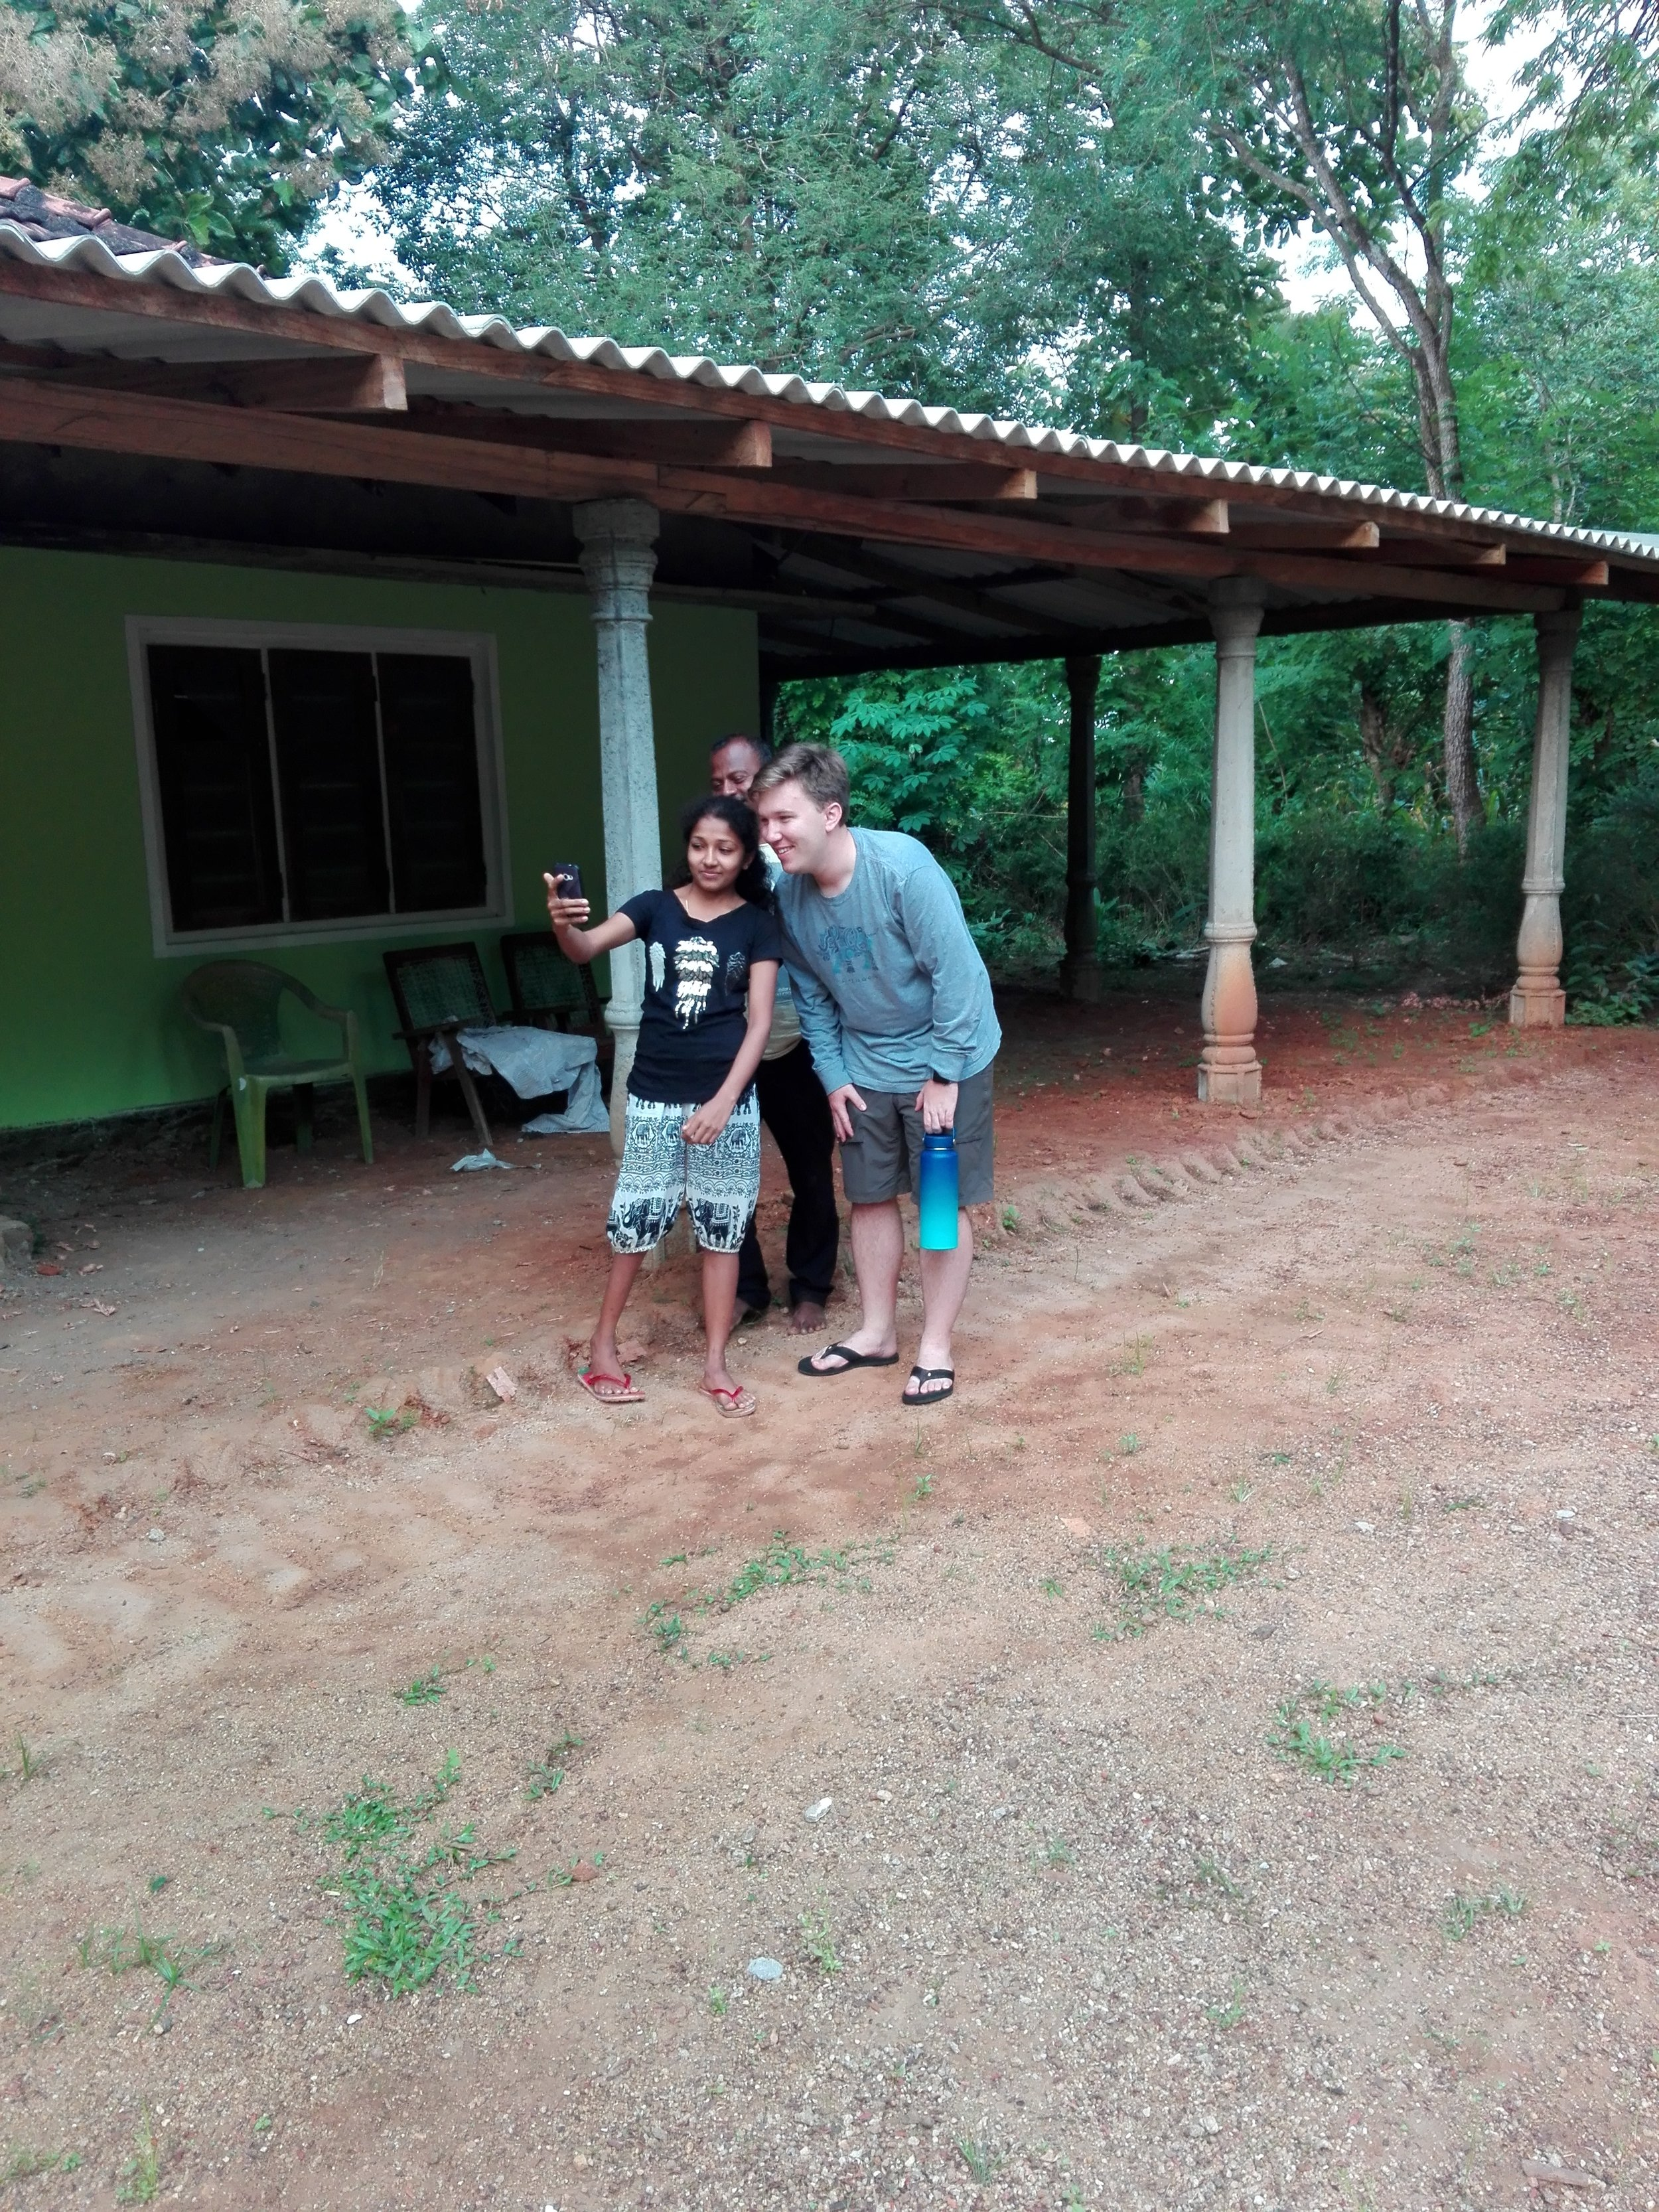 I pose for a selfie with a girl from Nimal's village. Nimal is also posing for the photo…he never passes up an opportunity for that. Note: Sachintha took this photo with the intent of posting it on social media to embarrass me. I figure that if I do it first, I take away his power to do that. Photo: Sachintha Samaraweera.